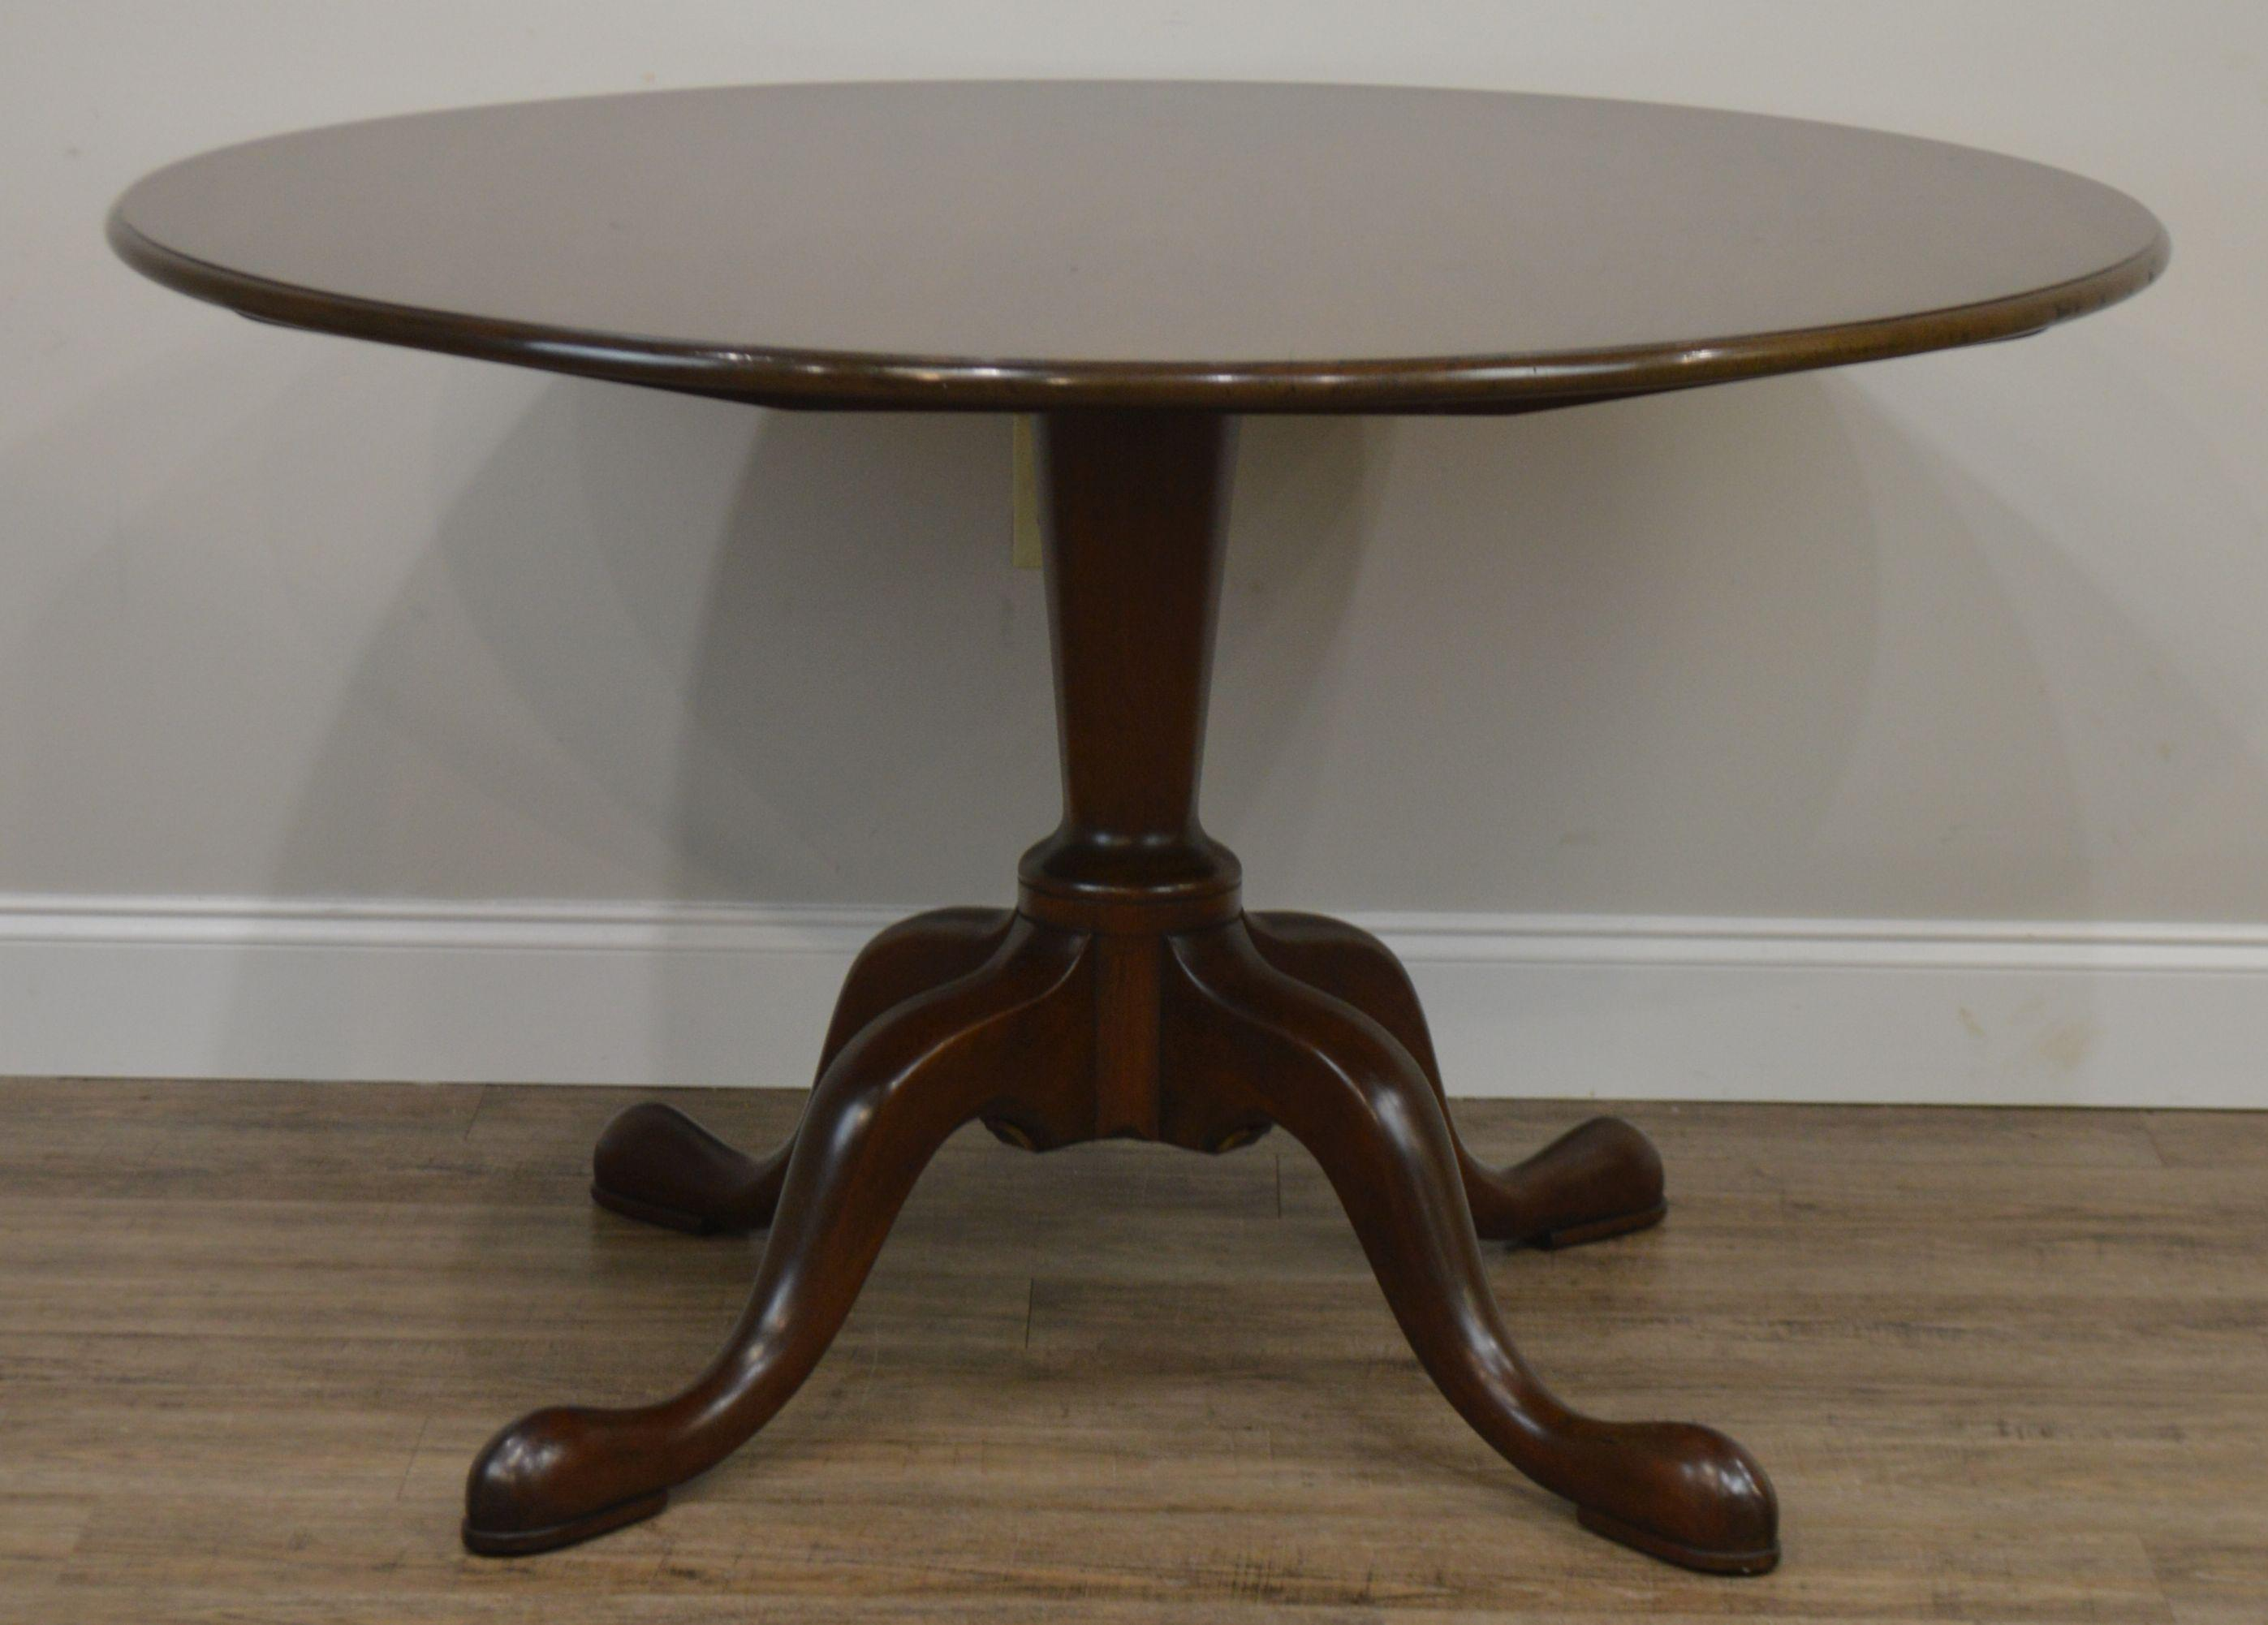 50 Round Dining Table With Leaf